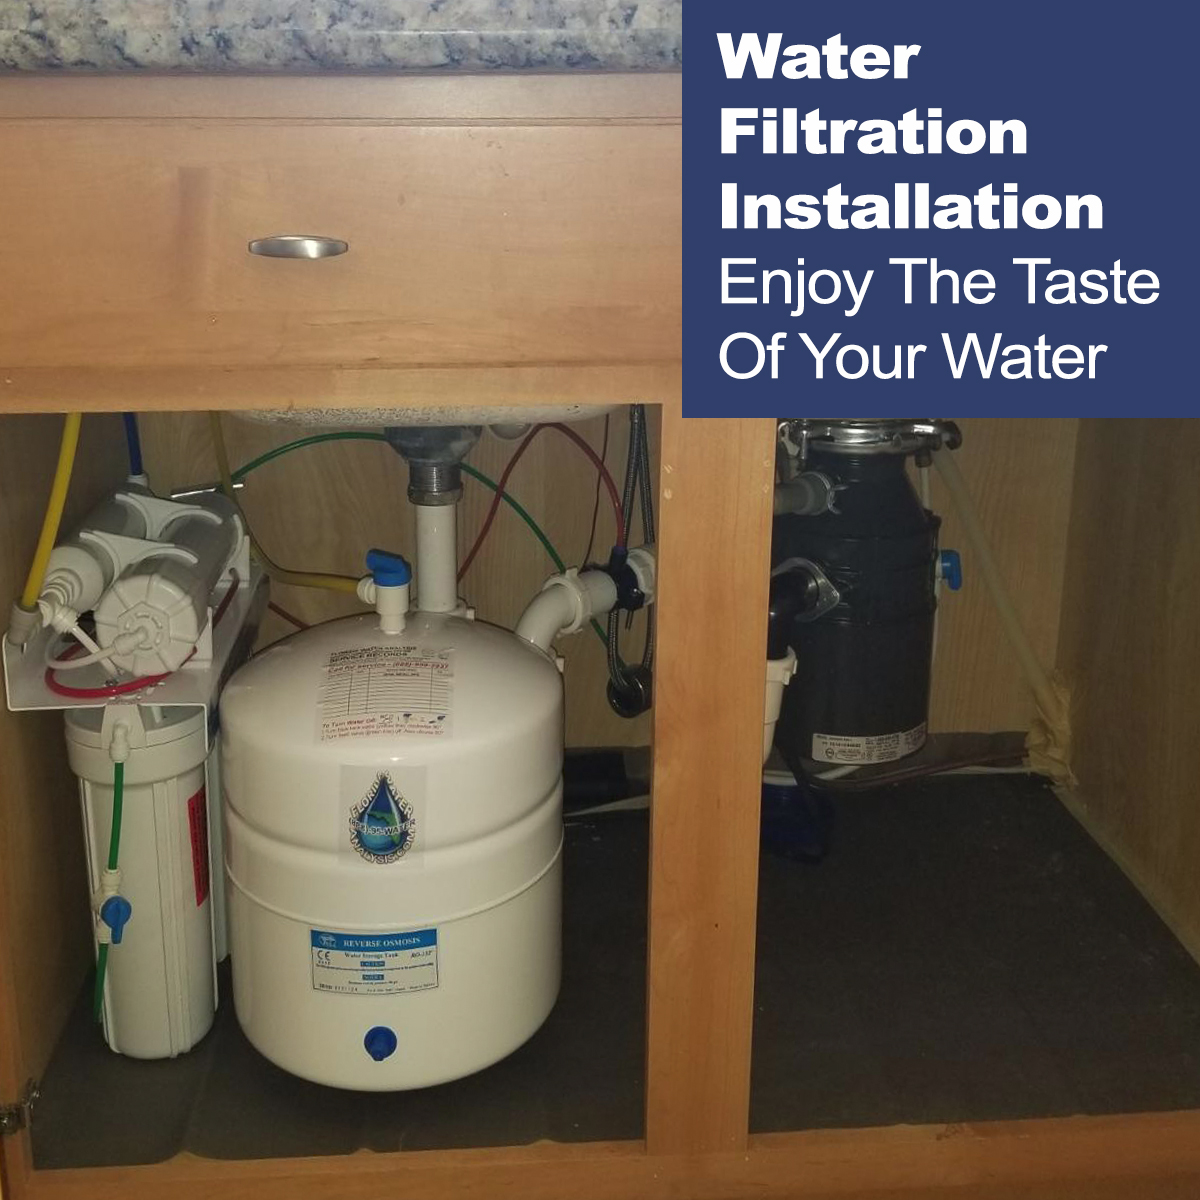 water filtration installation